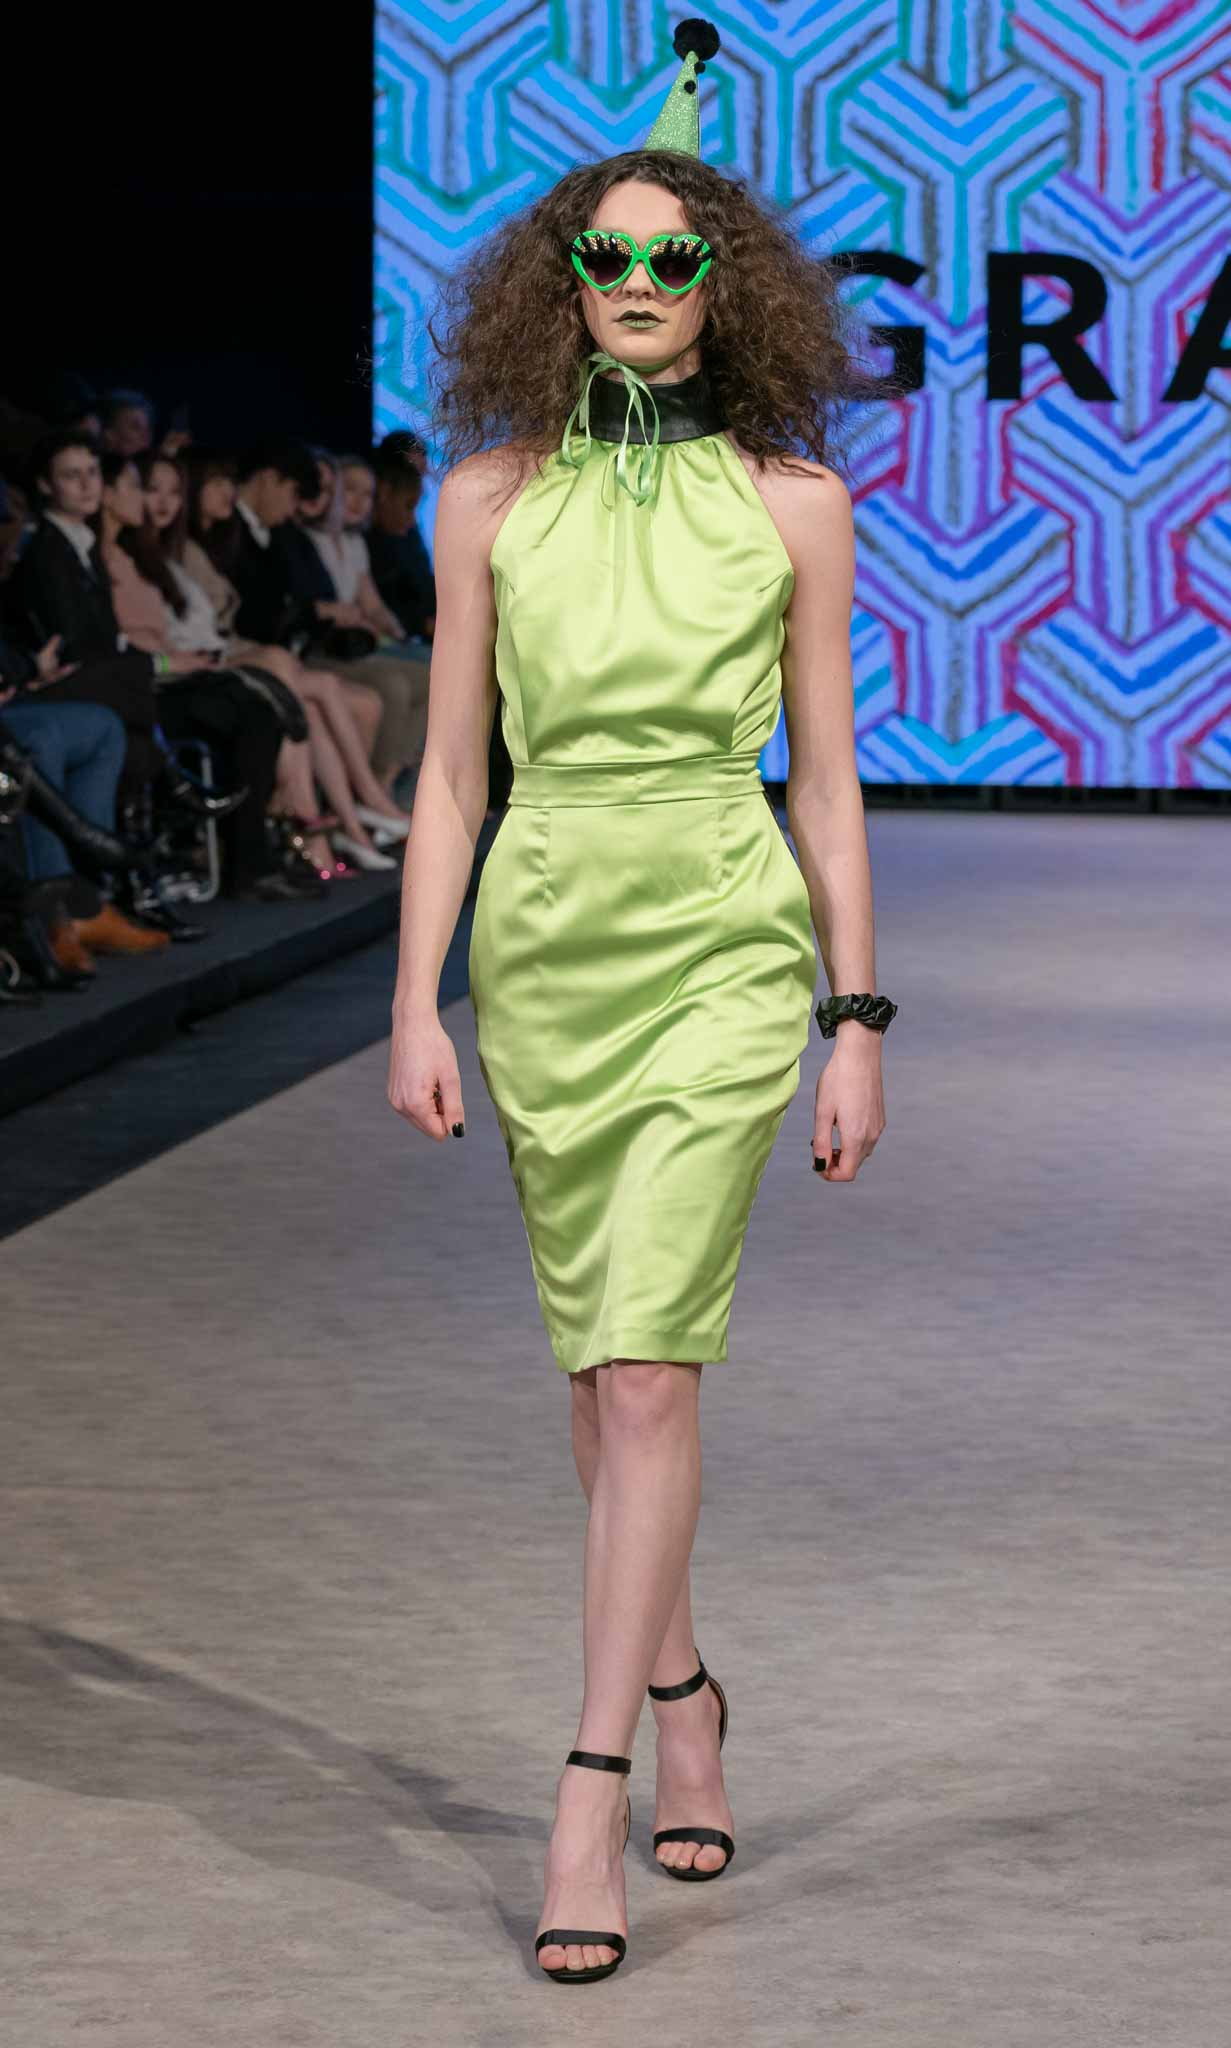 Vancouver Fashion Week Top Looks Grandi Photo Simon Lau